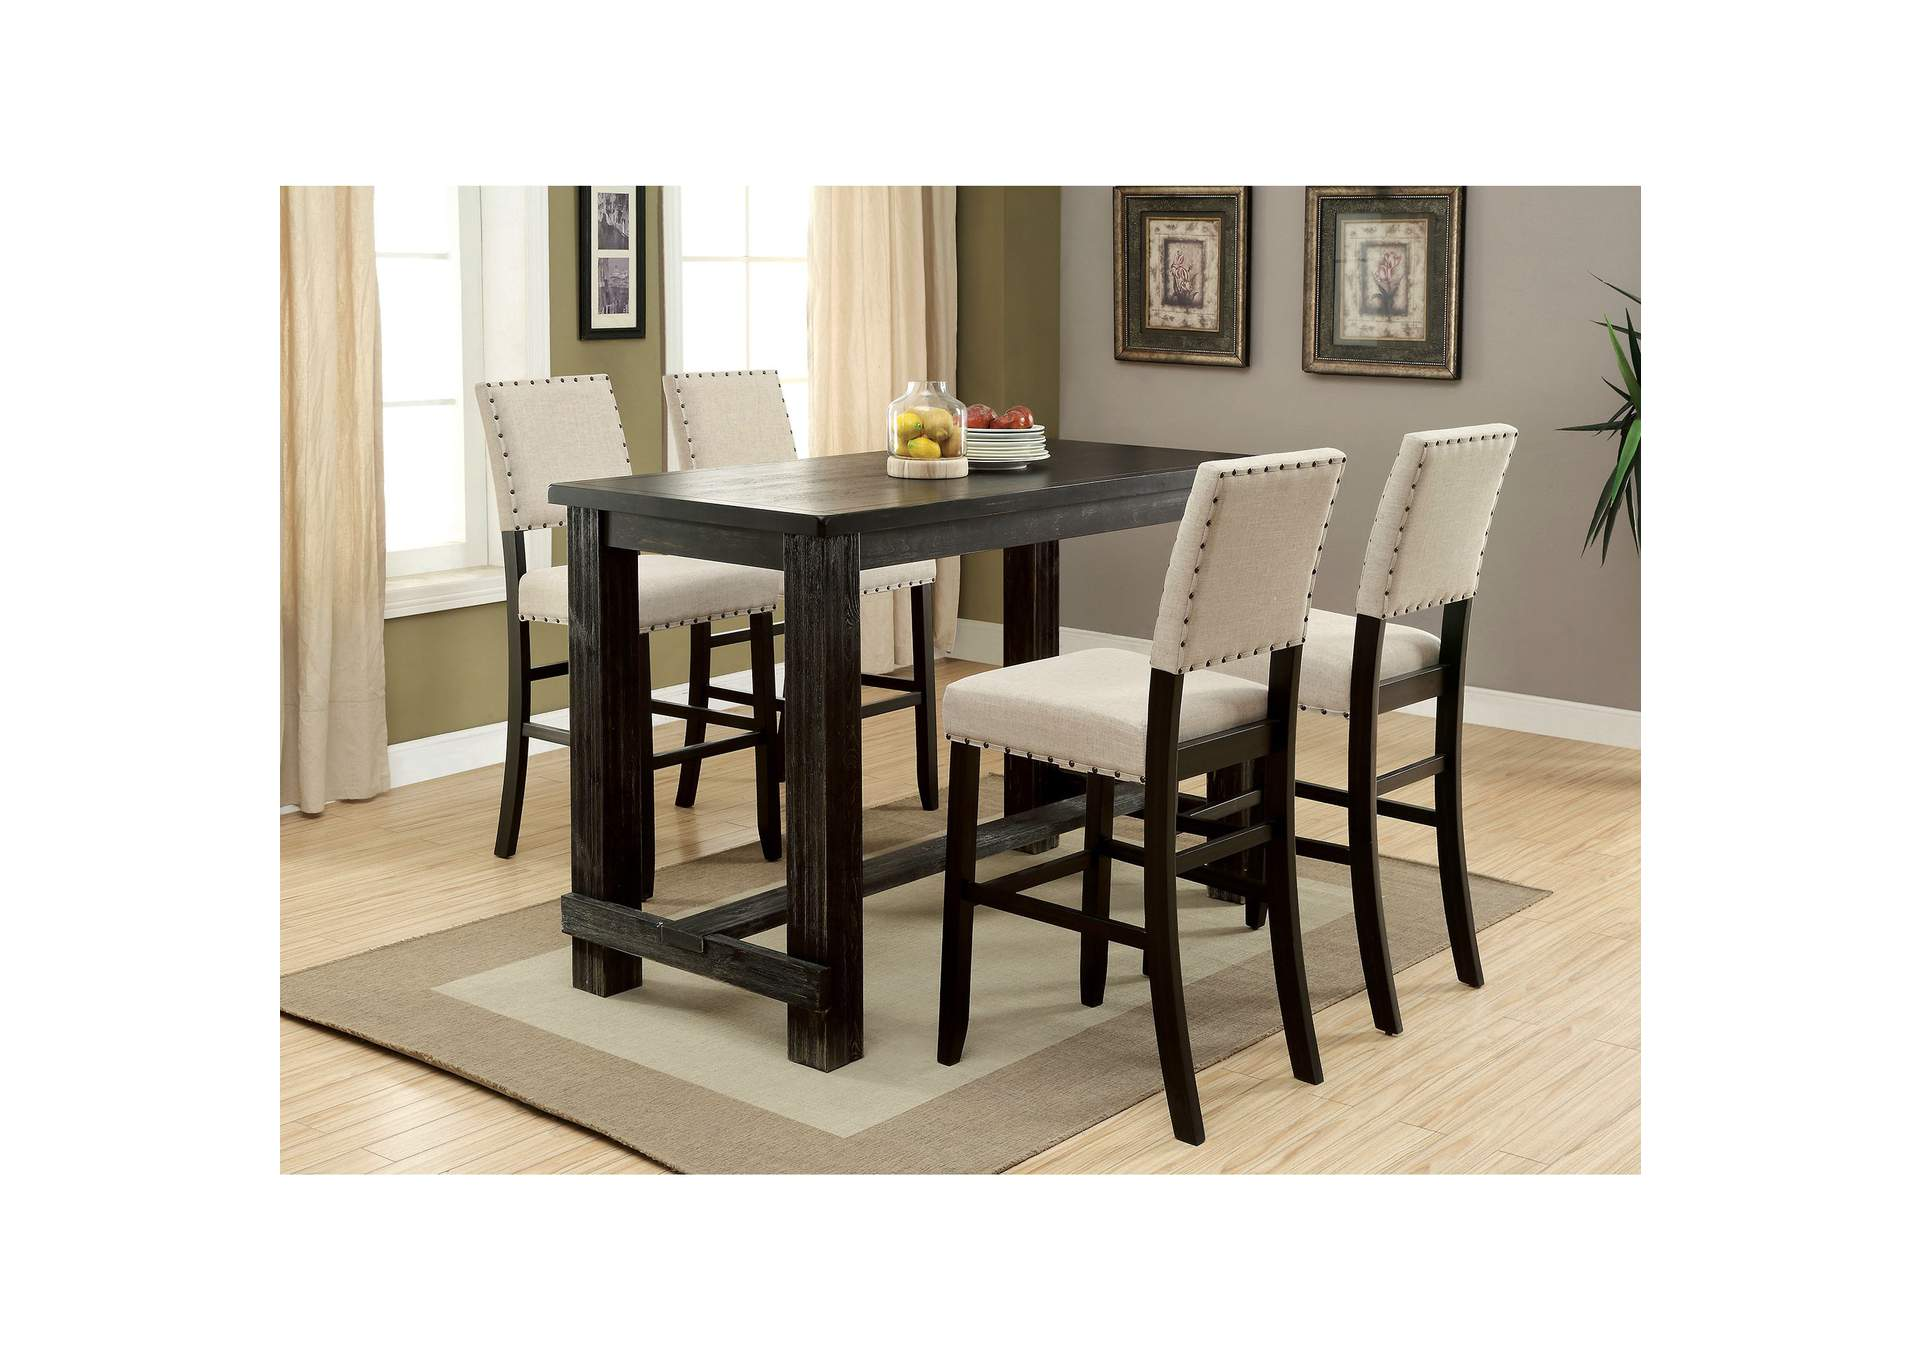 Sania II Antique Black Bar Table,Furniture of America